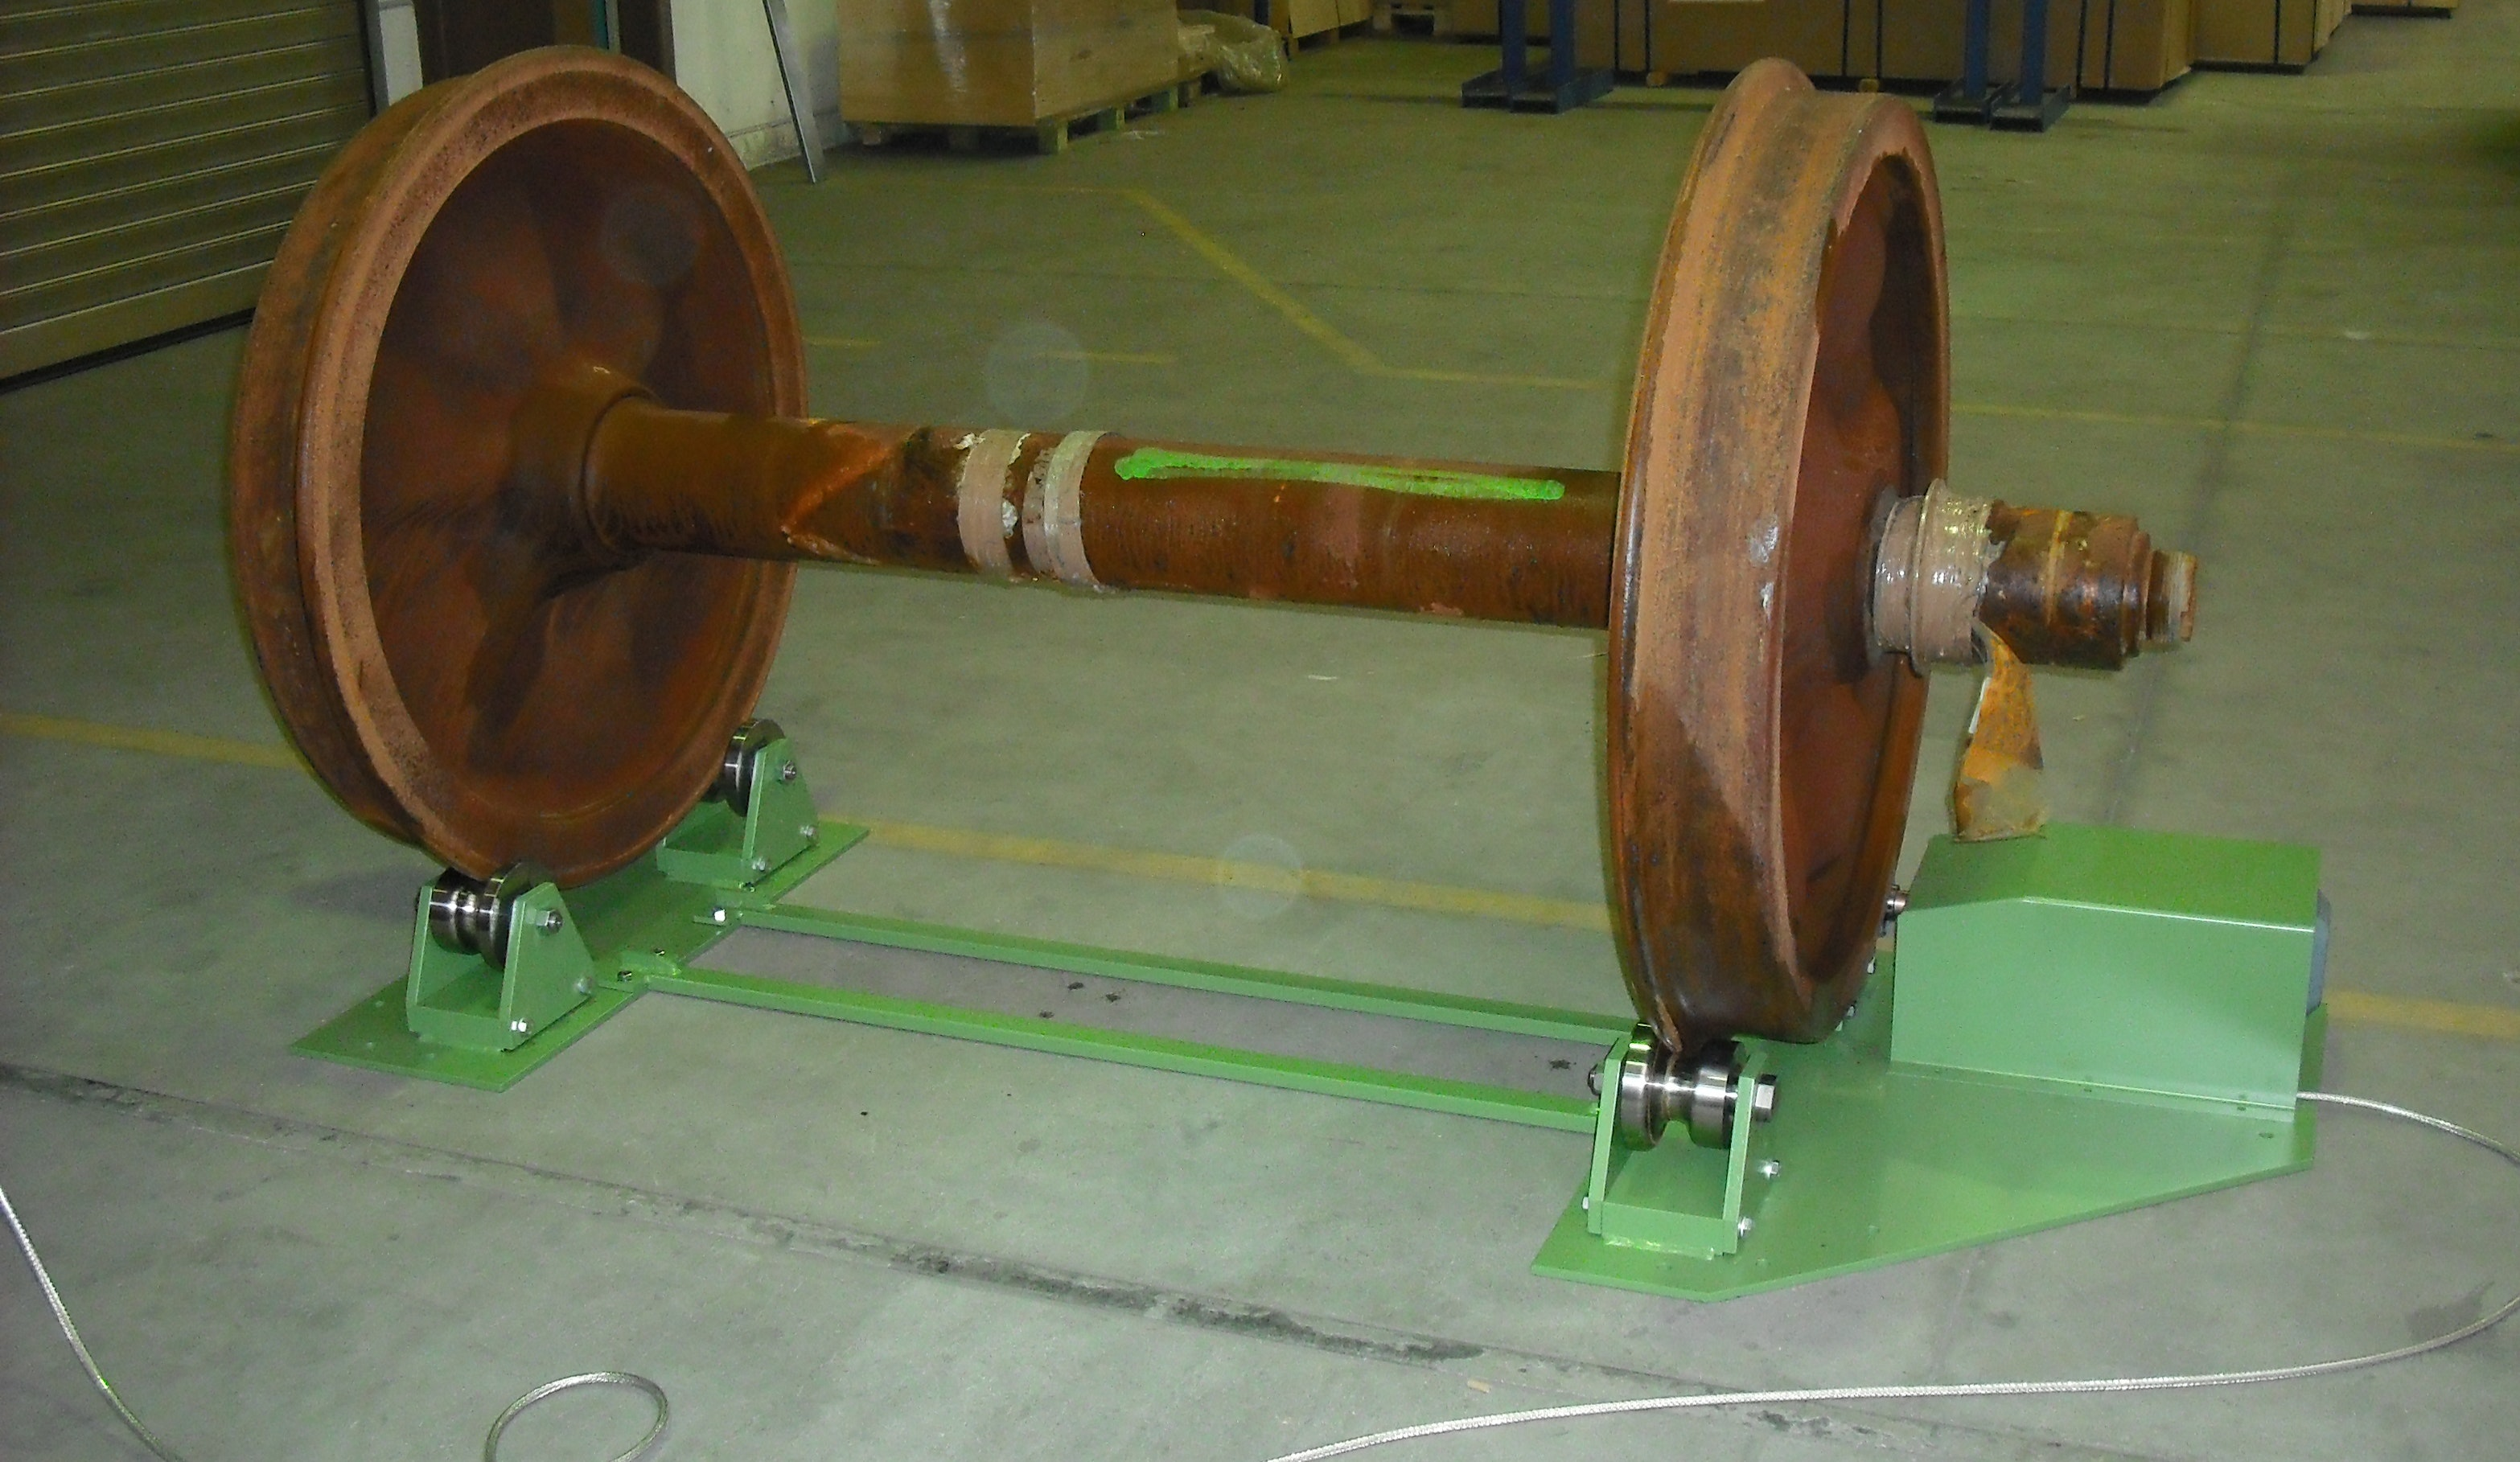 Roller stand for wheelsets (with wheelset): Four profile rollers, one of them is driven, support the wheelset. The roller stand can be used stationary by being firmly connected to the hall floor.